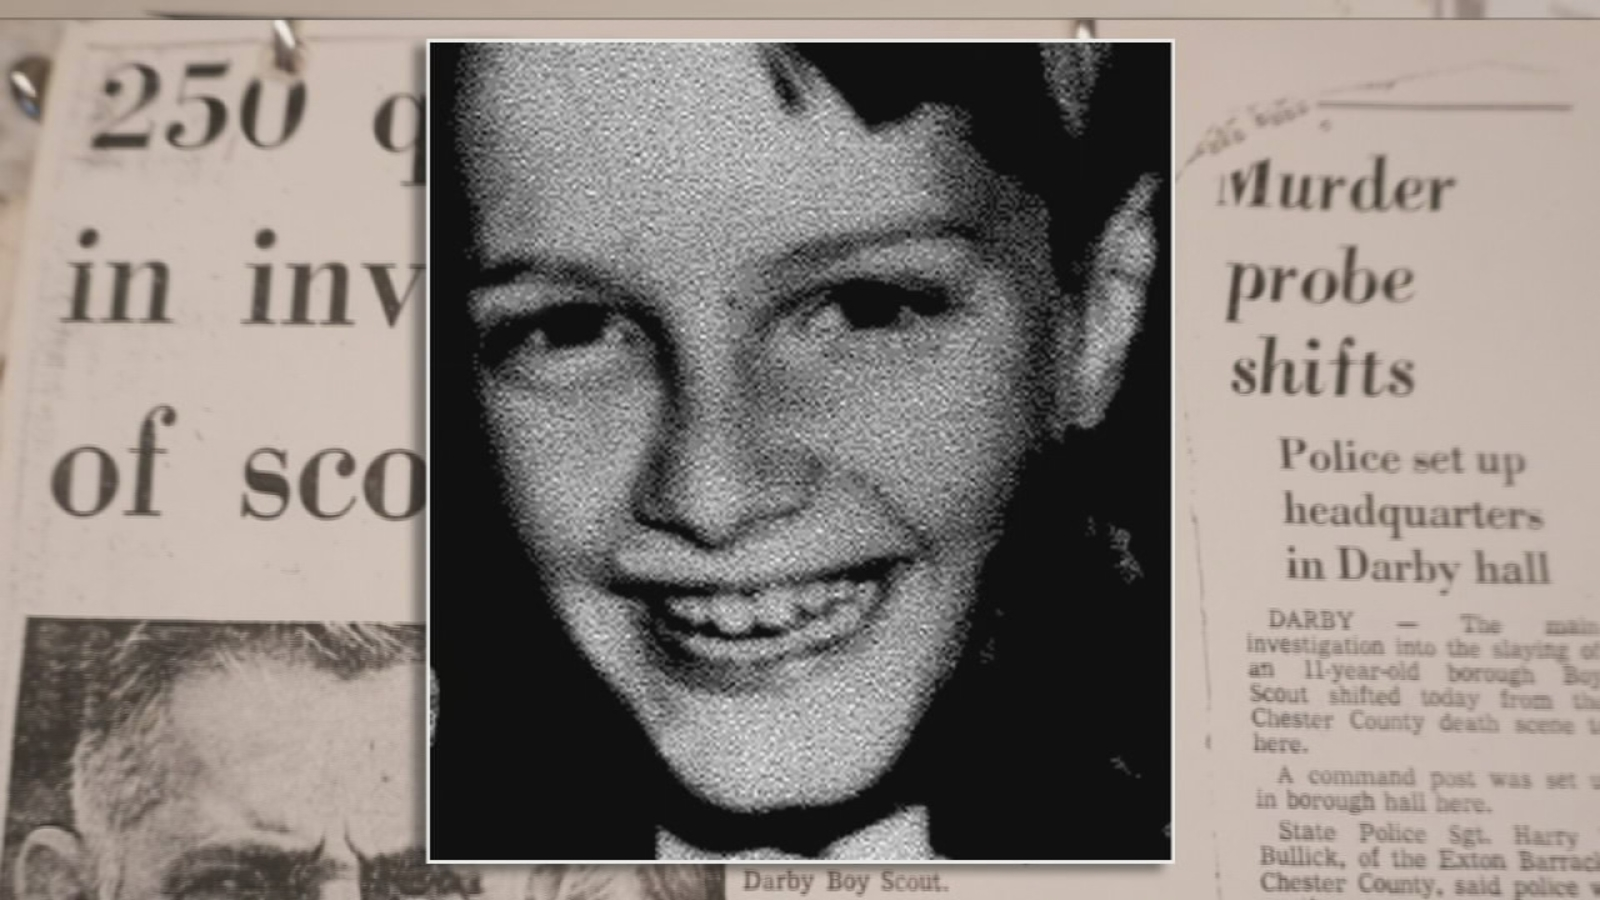 47 years later, Boy Scout's death remains mystery